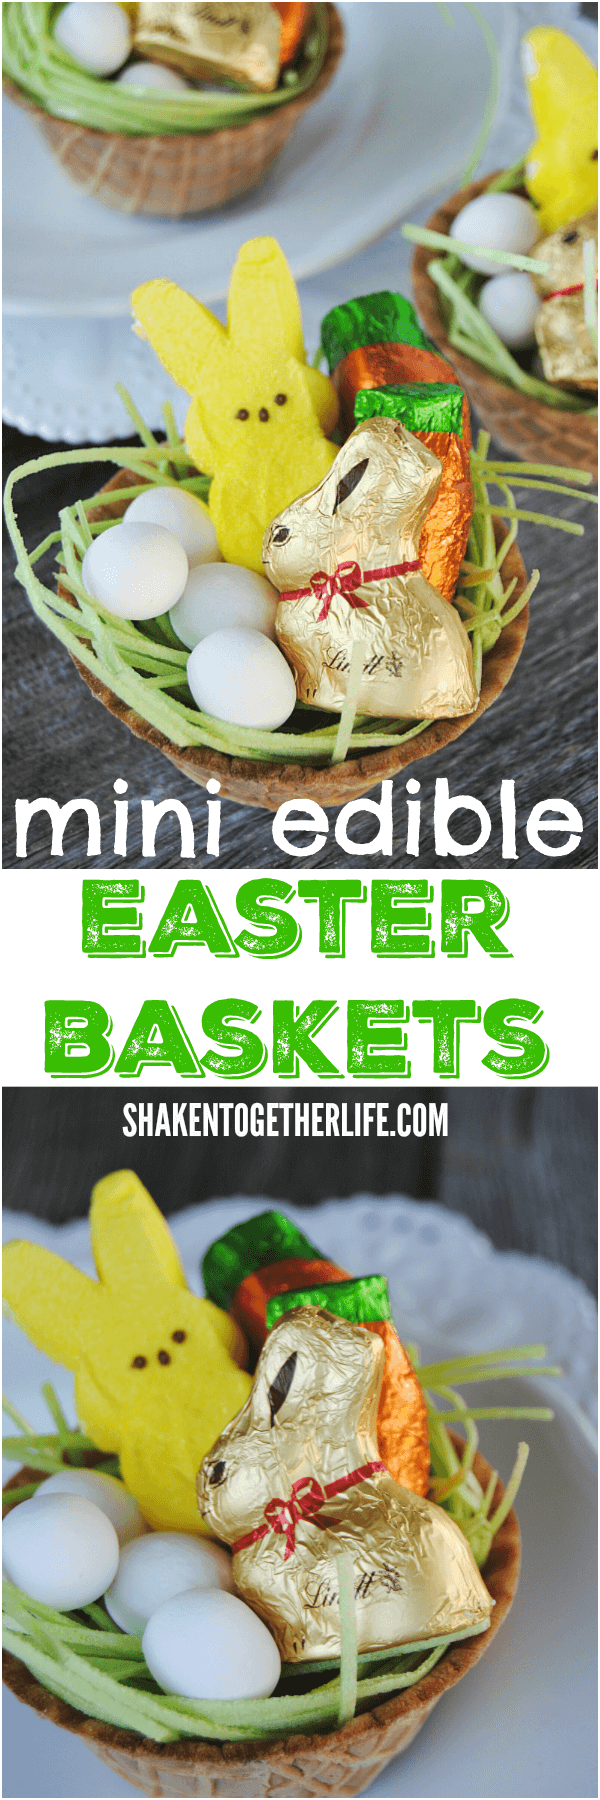 Need a fun Easter activity for the kiddos? Make Mini Edible Easter Baskets!